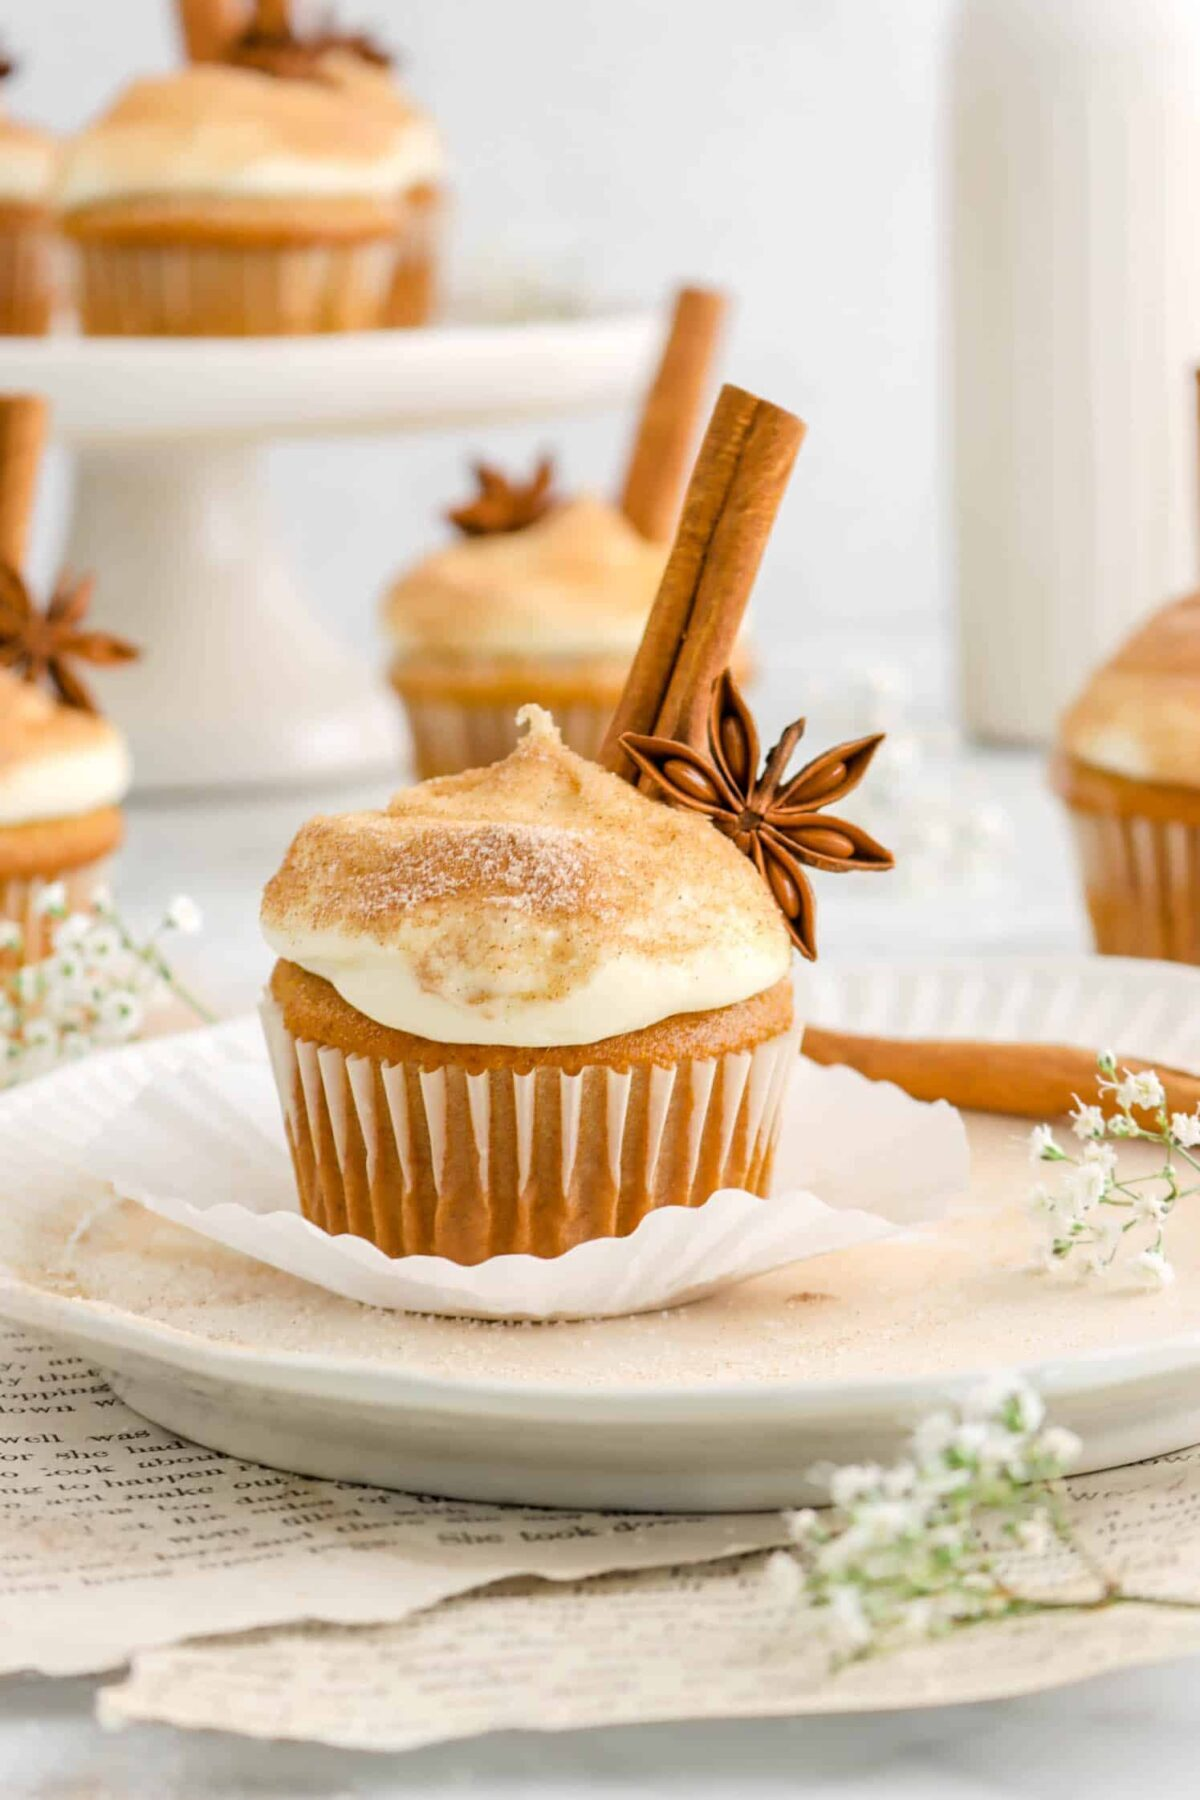 pumpkin cupcake on white plate with flowers, a star anise, and cinnamon stick on the cupcake